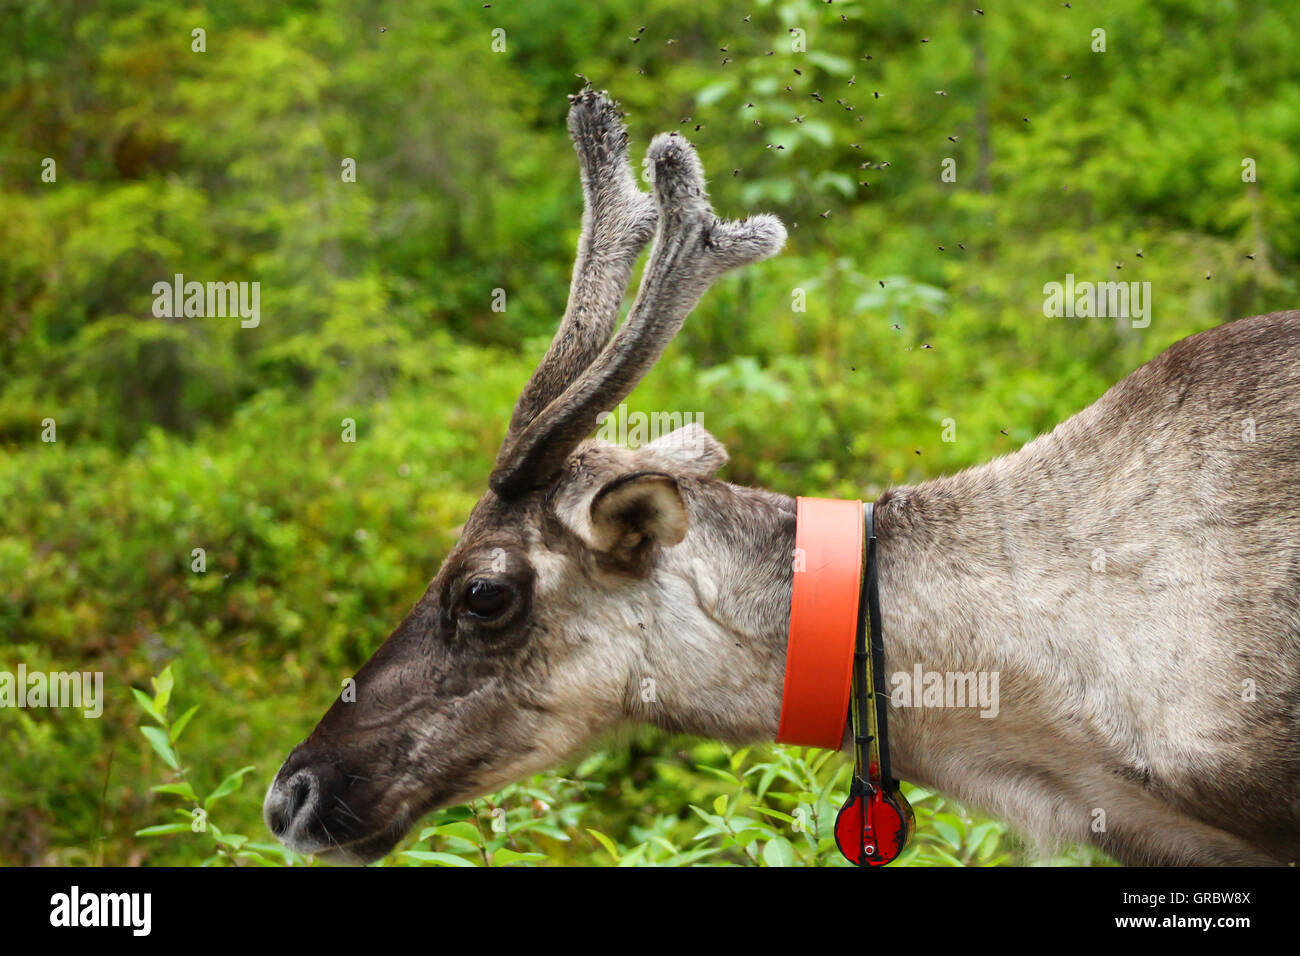 Reindeer has problems with 'few' flies. This reindeer tries to shoo the flies that are teasing it - Stock Image